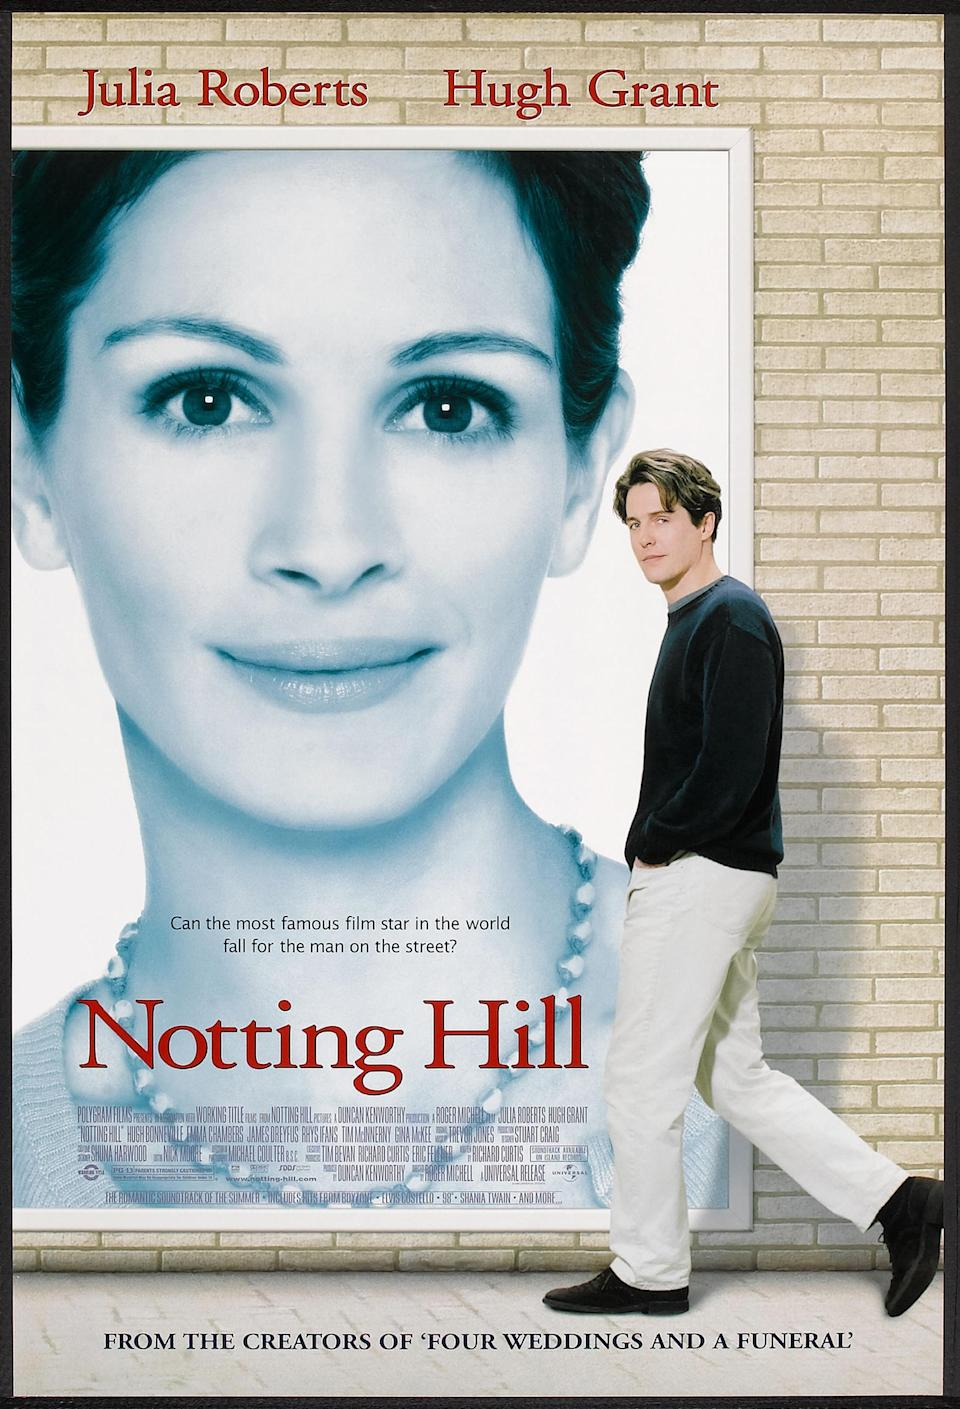 Poster for the movie 'Notting Hill (directed by Roger Michell), 1999. (Photo by Buyenlarge/Getty Images)